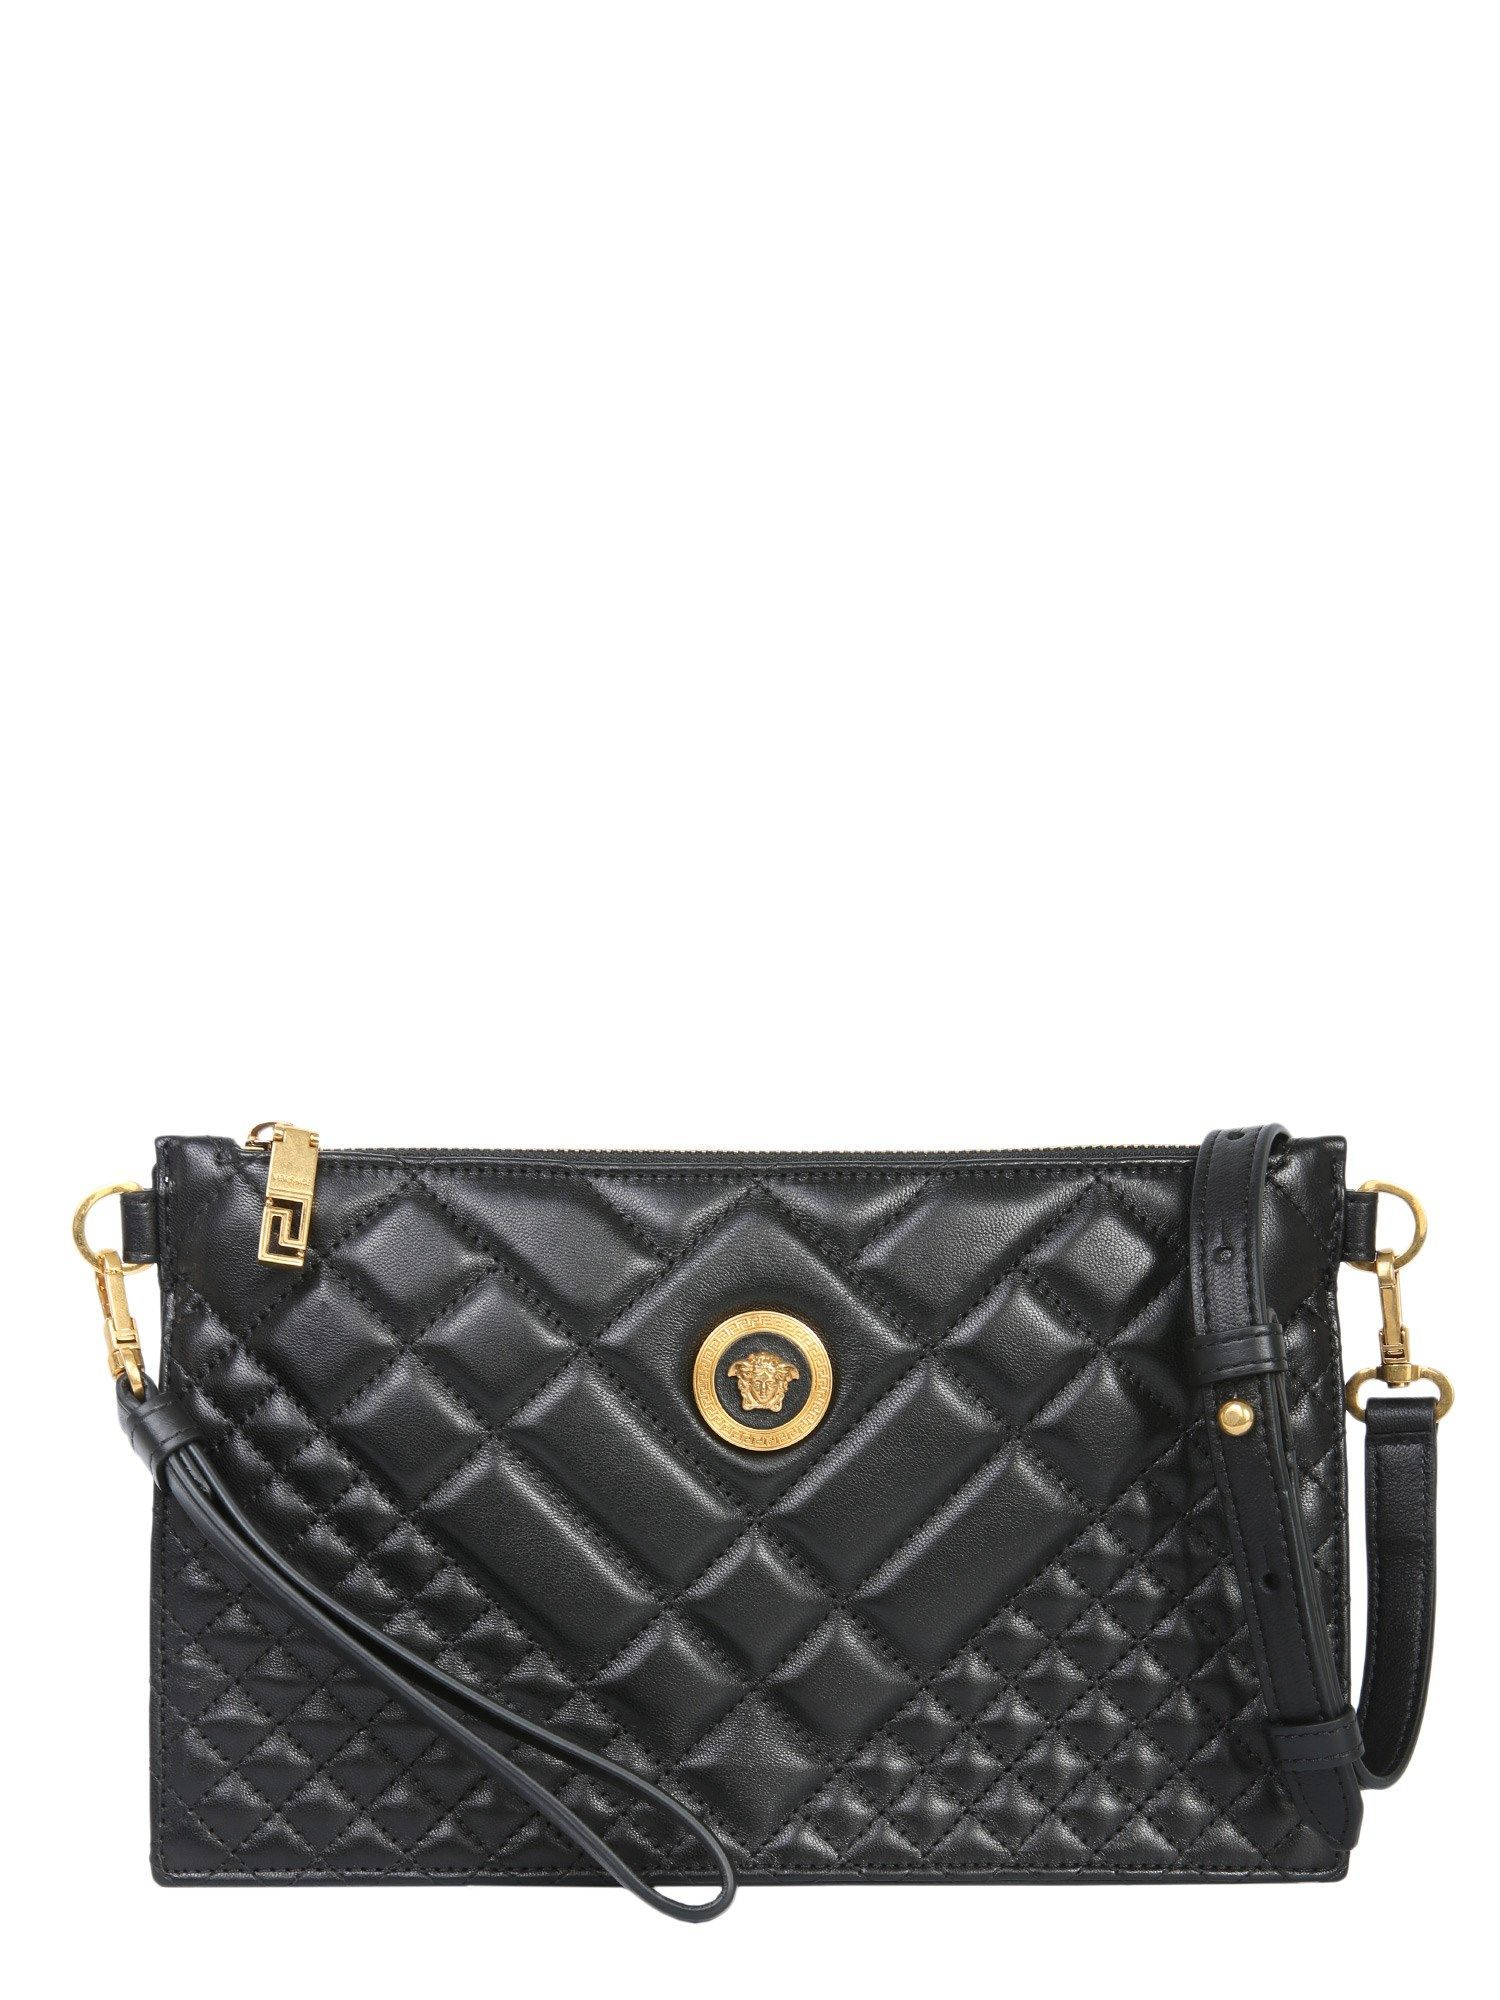 VERSACE SMALL LEATHER MEDUSA CLUTCH.  versace  bags  shoulder bags  clutch   leather  hand bags  clutchesversace 0babdc77879df